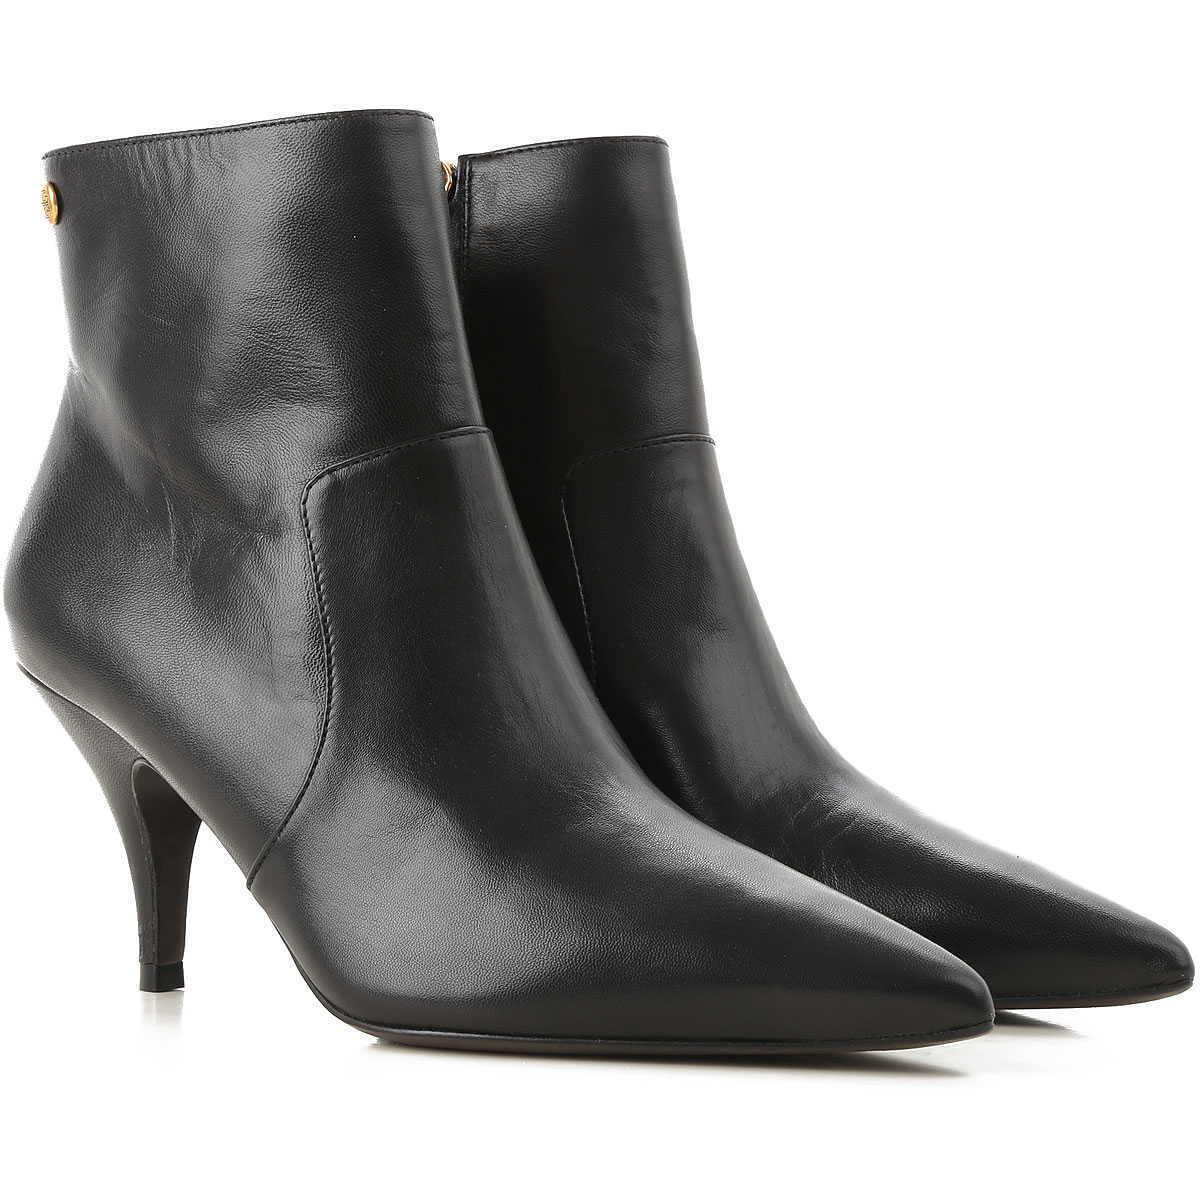 Tory Burch Boots for Women Booties On Sale - GOOFASH